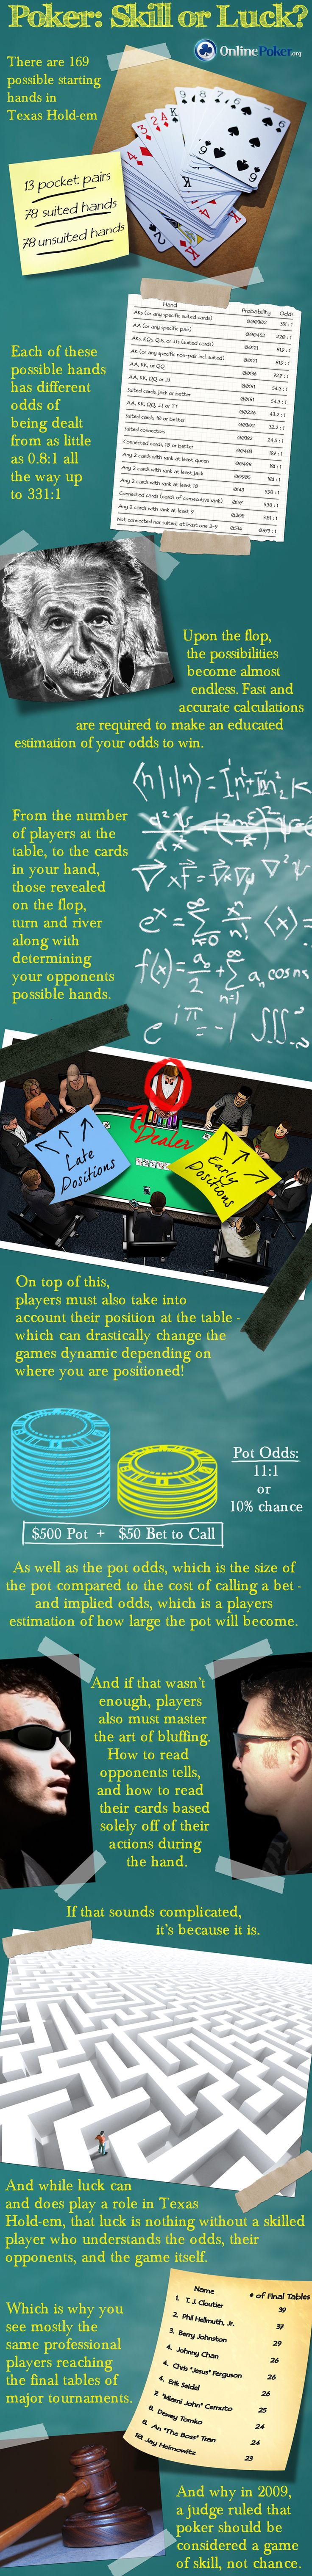 Texas Hold'em, Skill or Luck? [infographic]